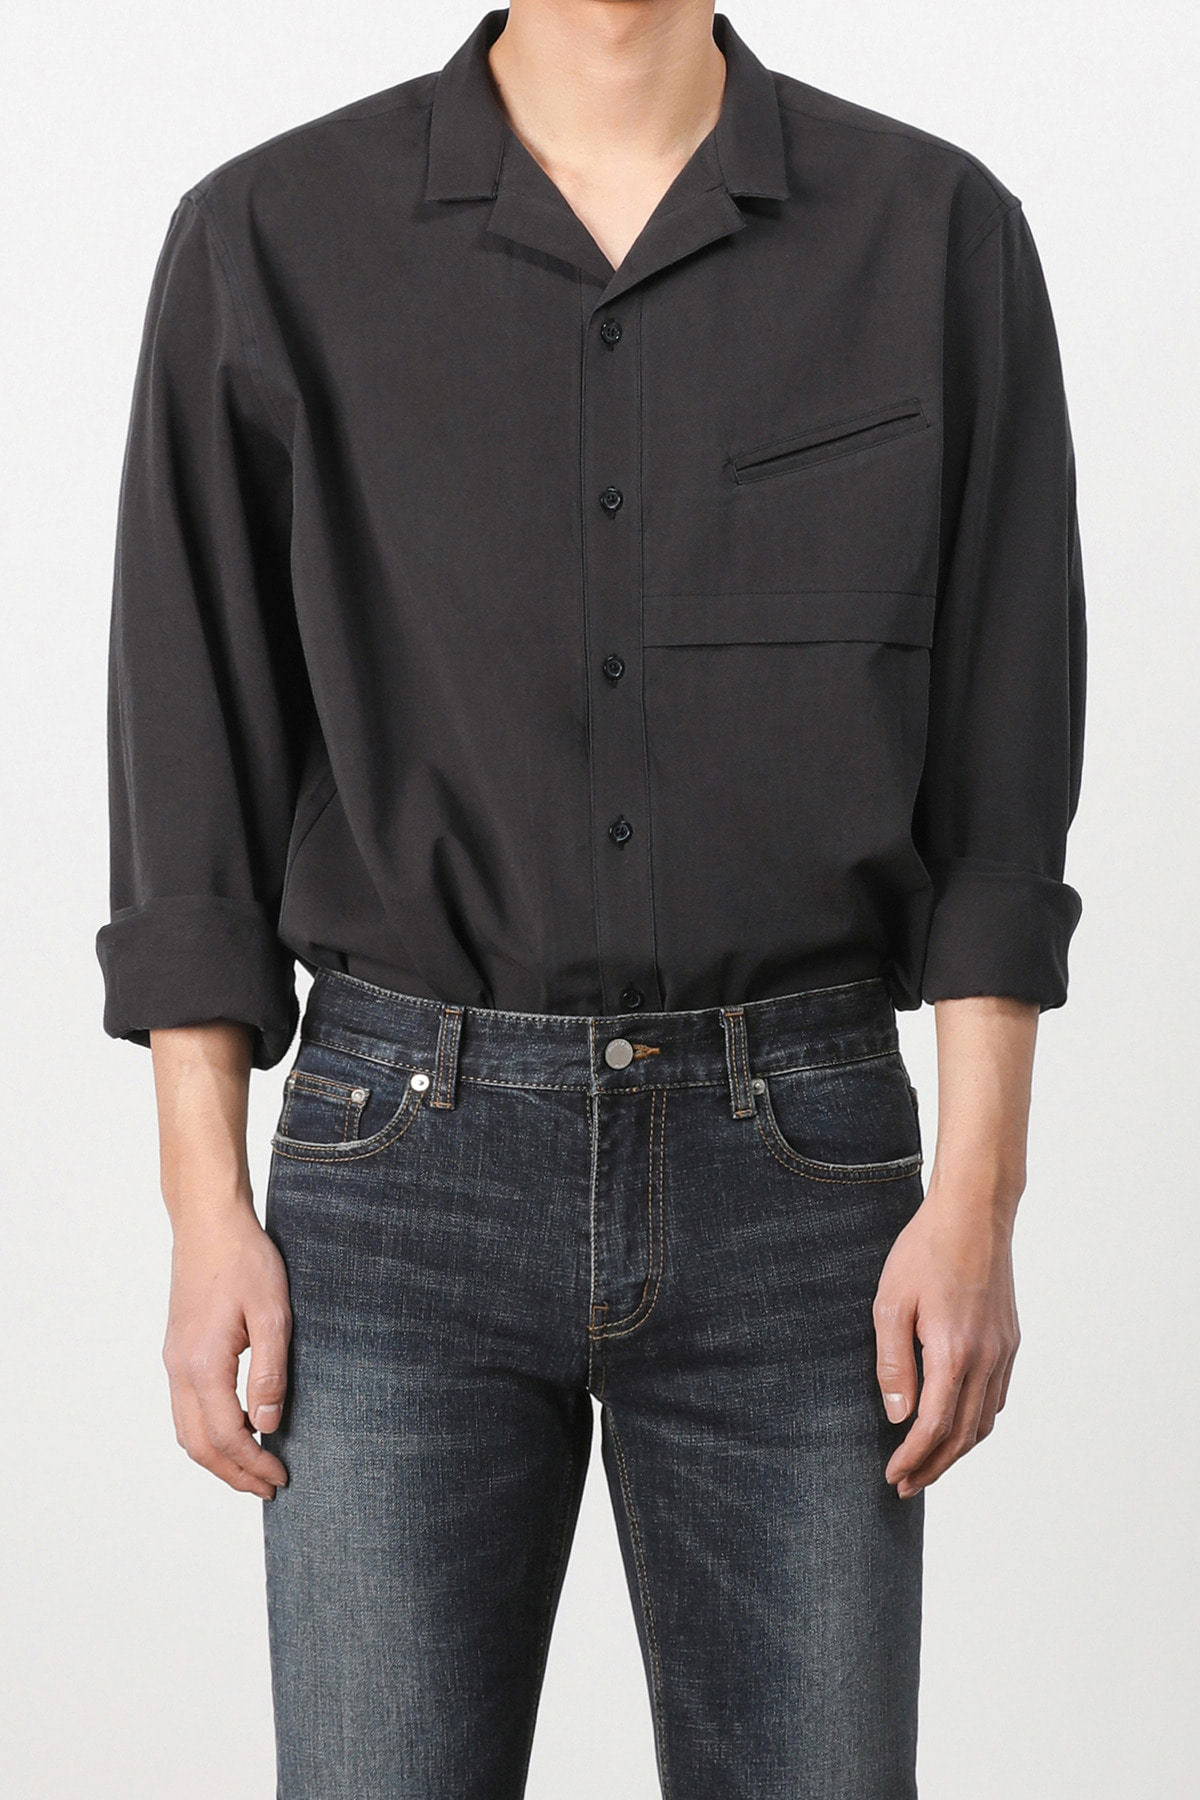 페이탈리즘 Ishinomaki open collar shirt (black) #jp34